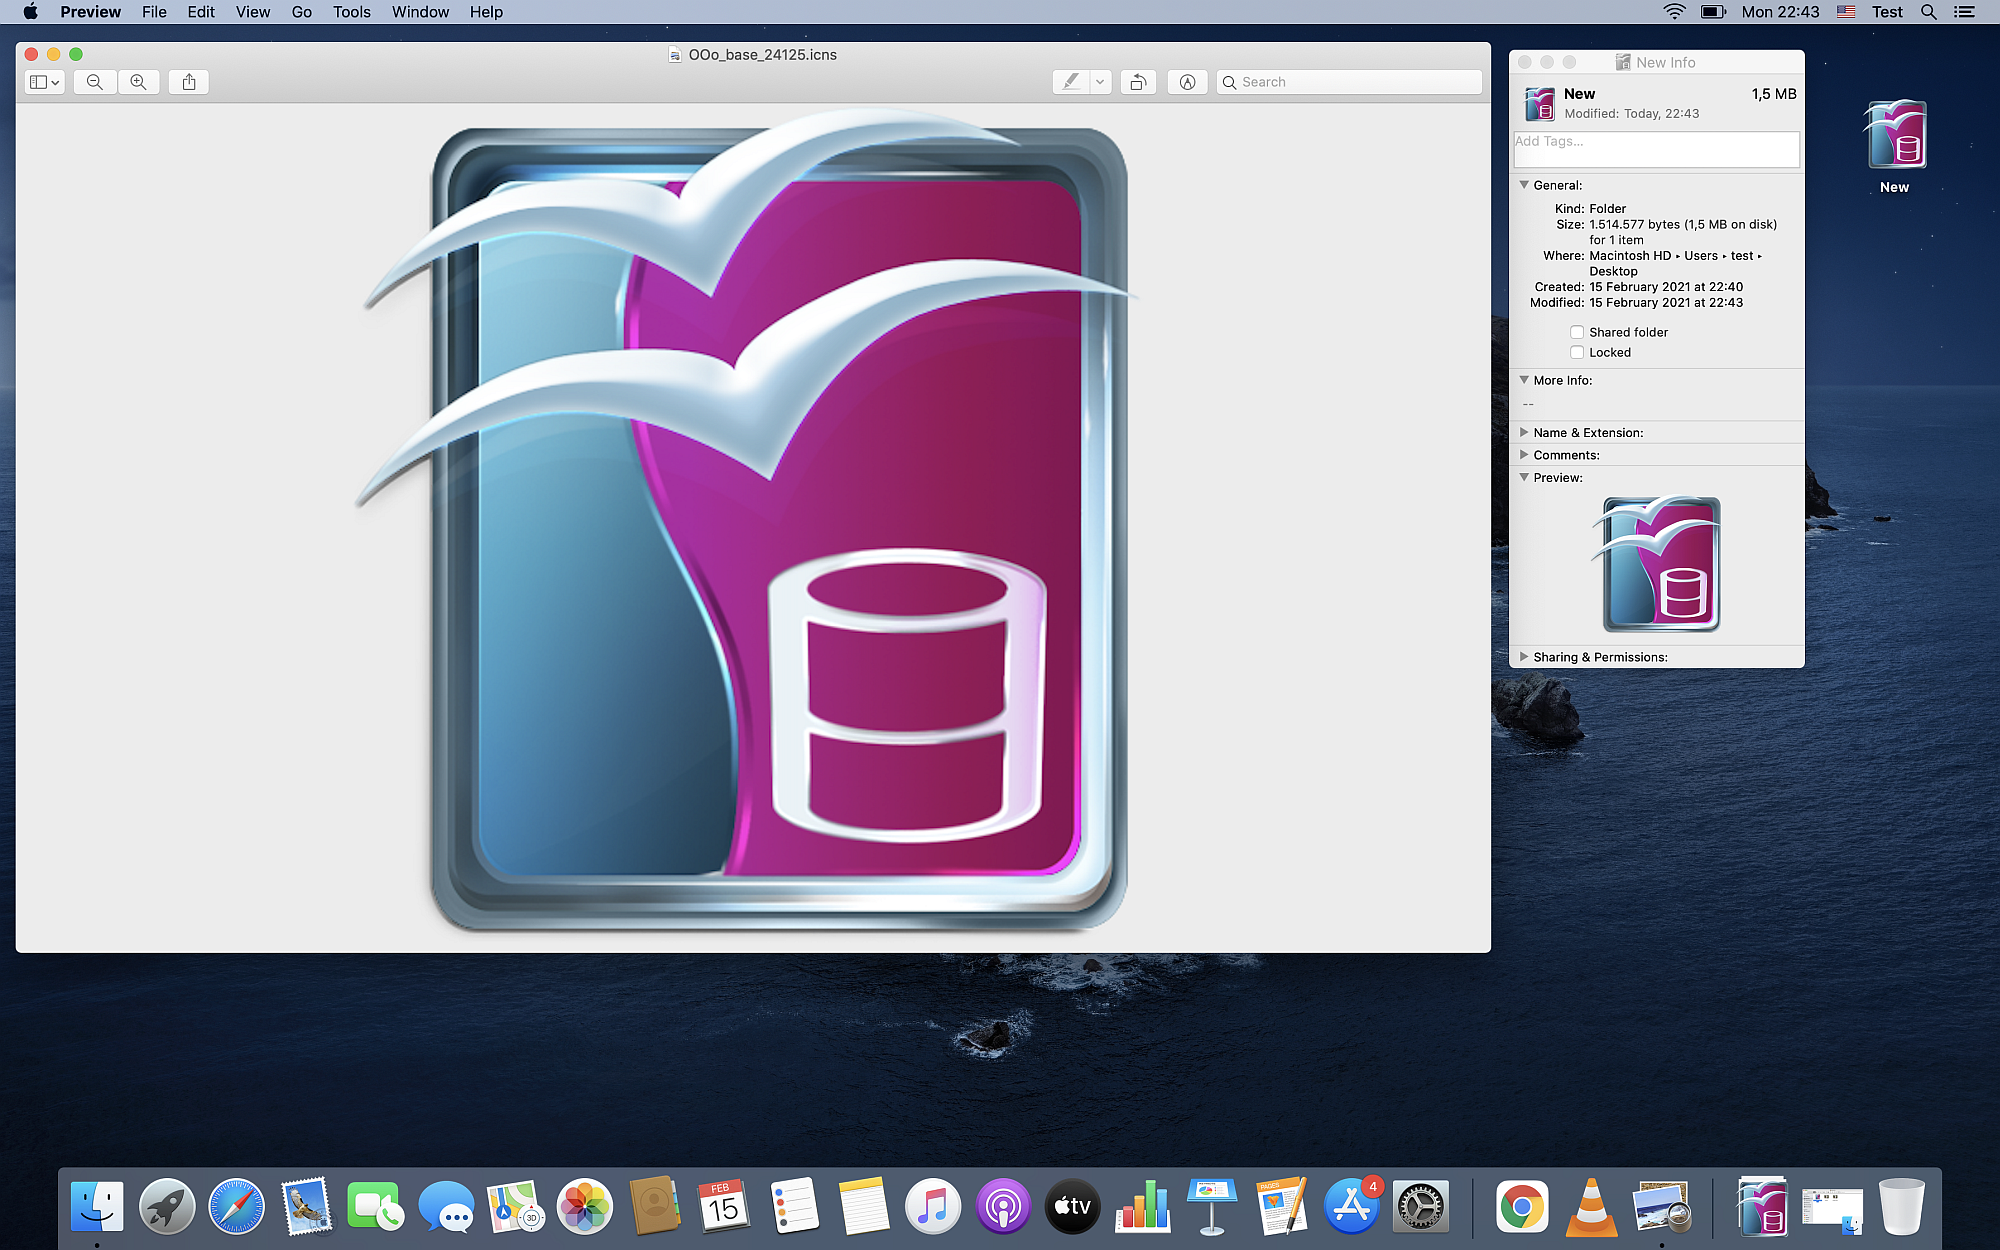 A customized icon on Mac OS